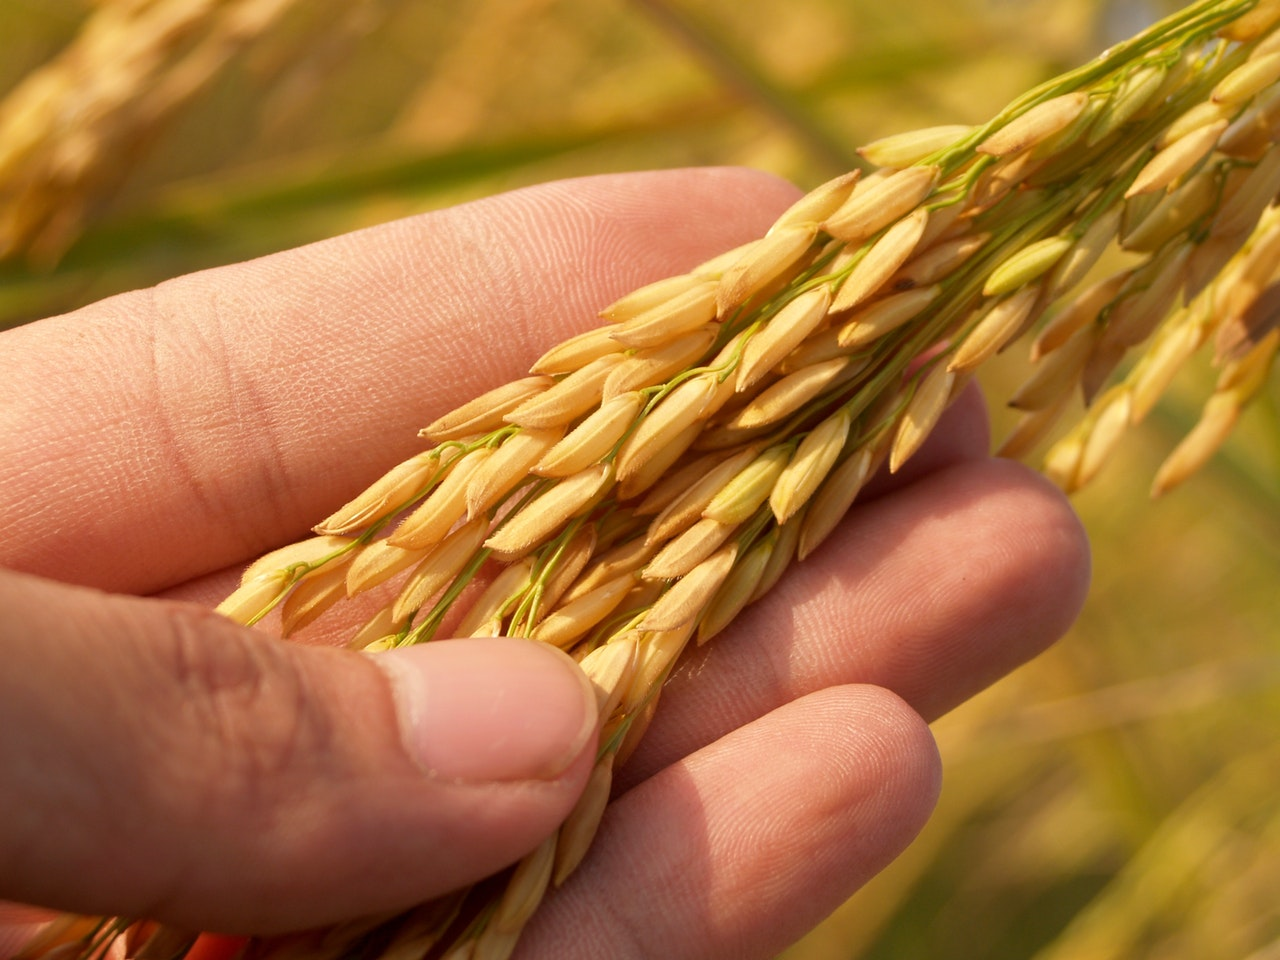 Golden paddy are expensive in global market